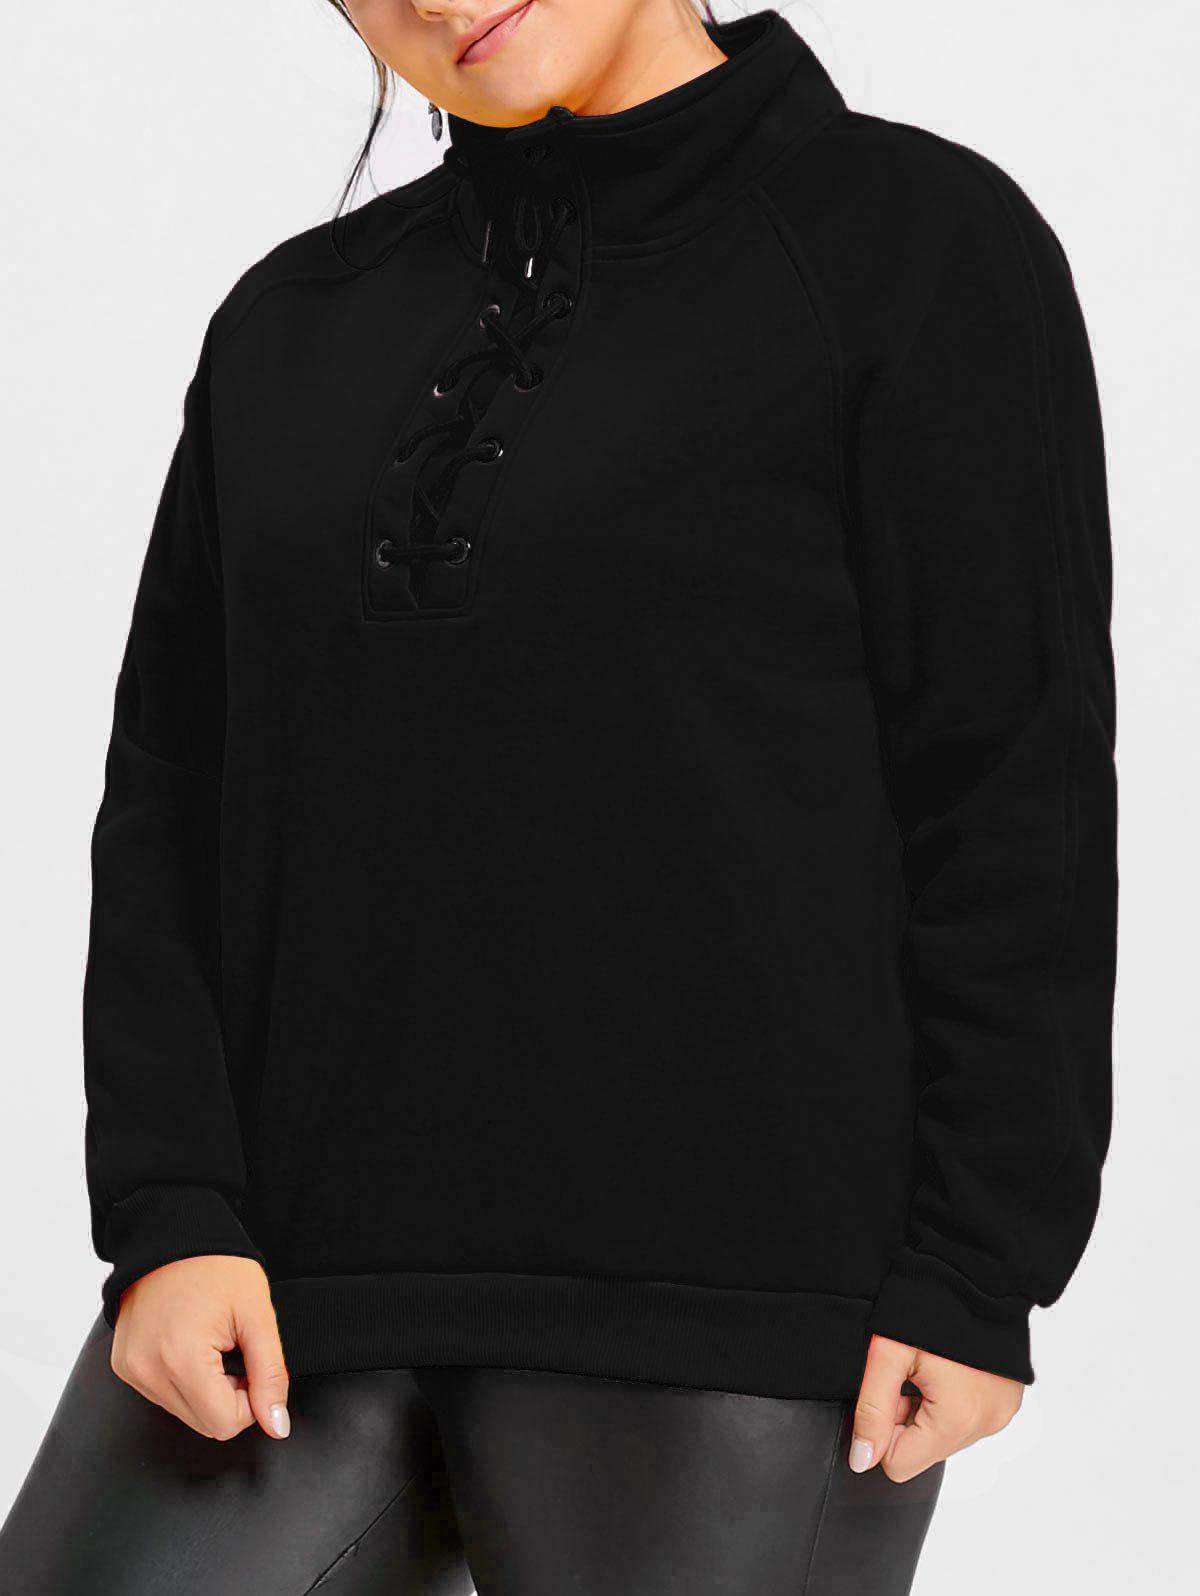 High Neck Plus Size Fleece Lined Lace Up Sweatshirt - BLACK XL